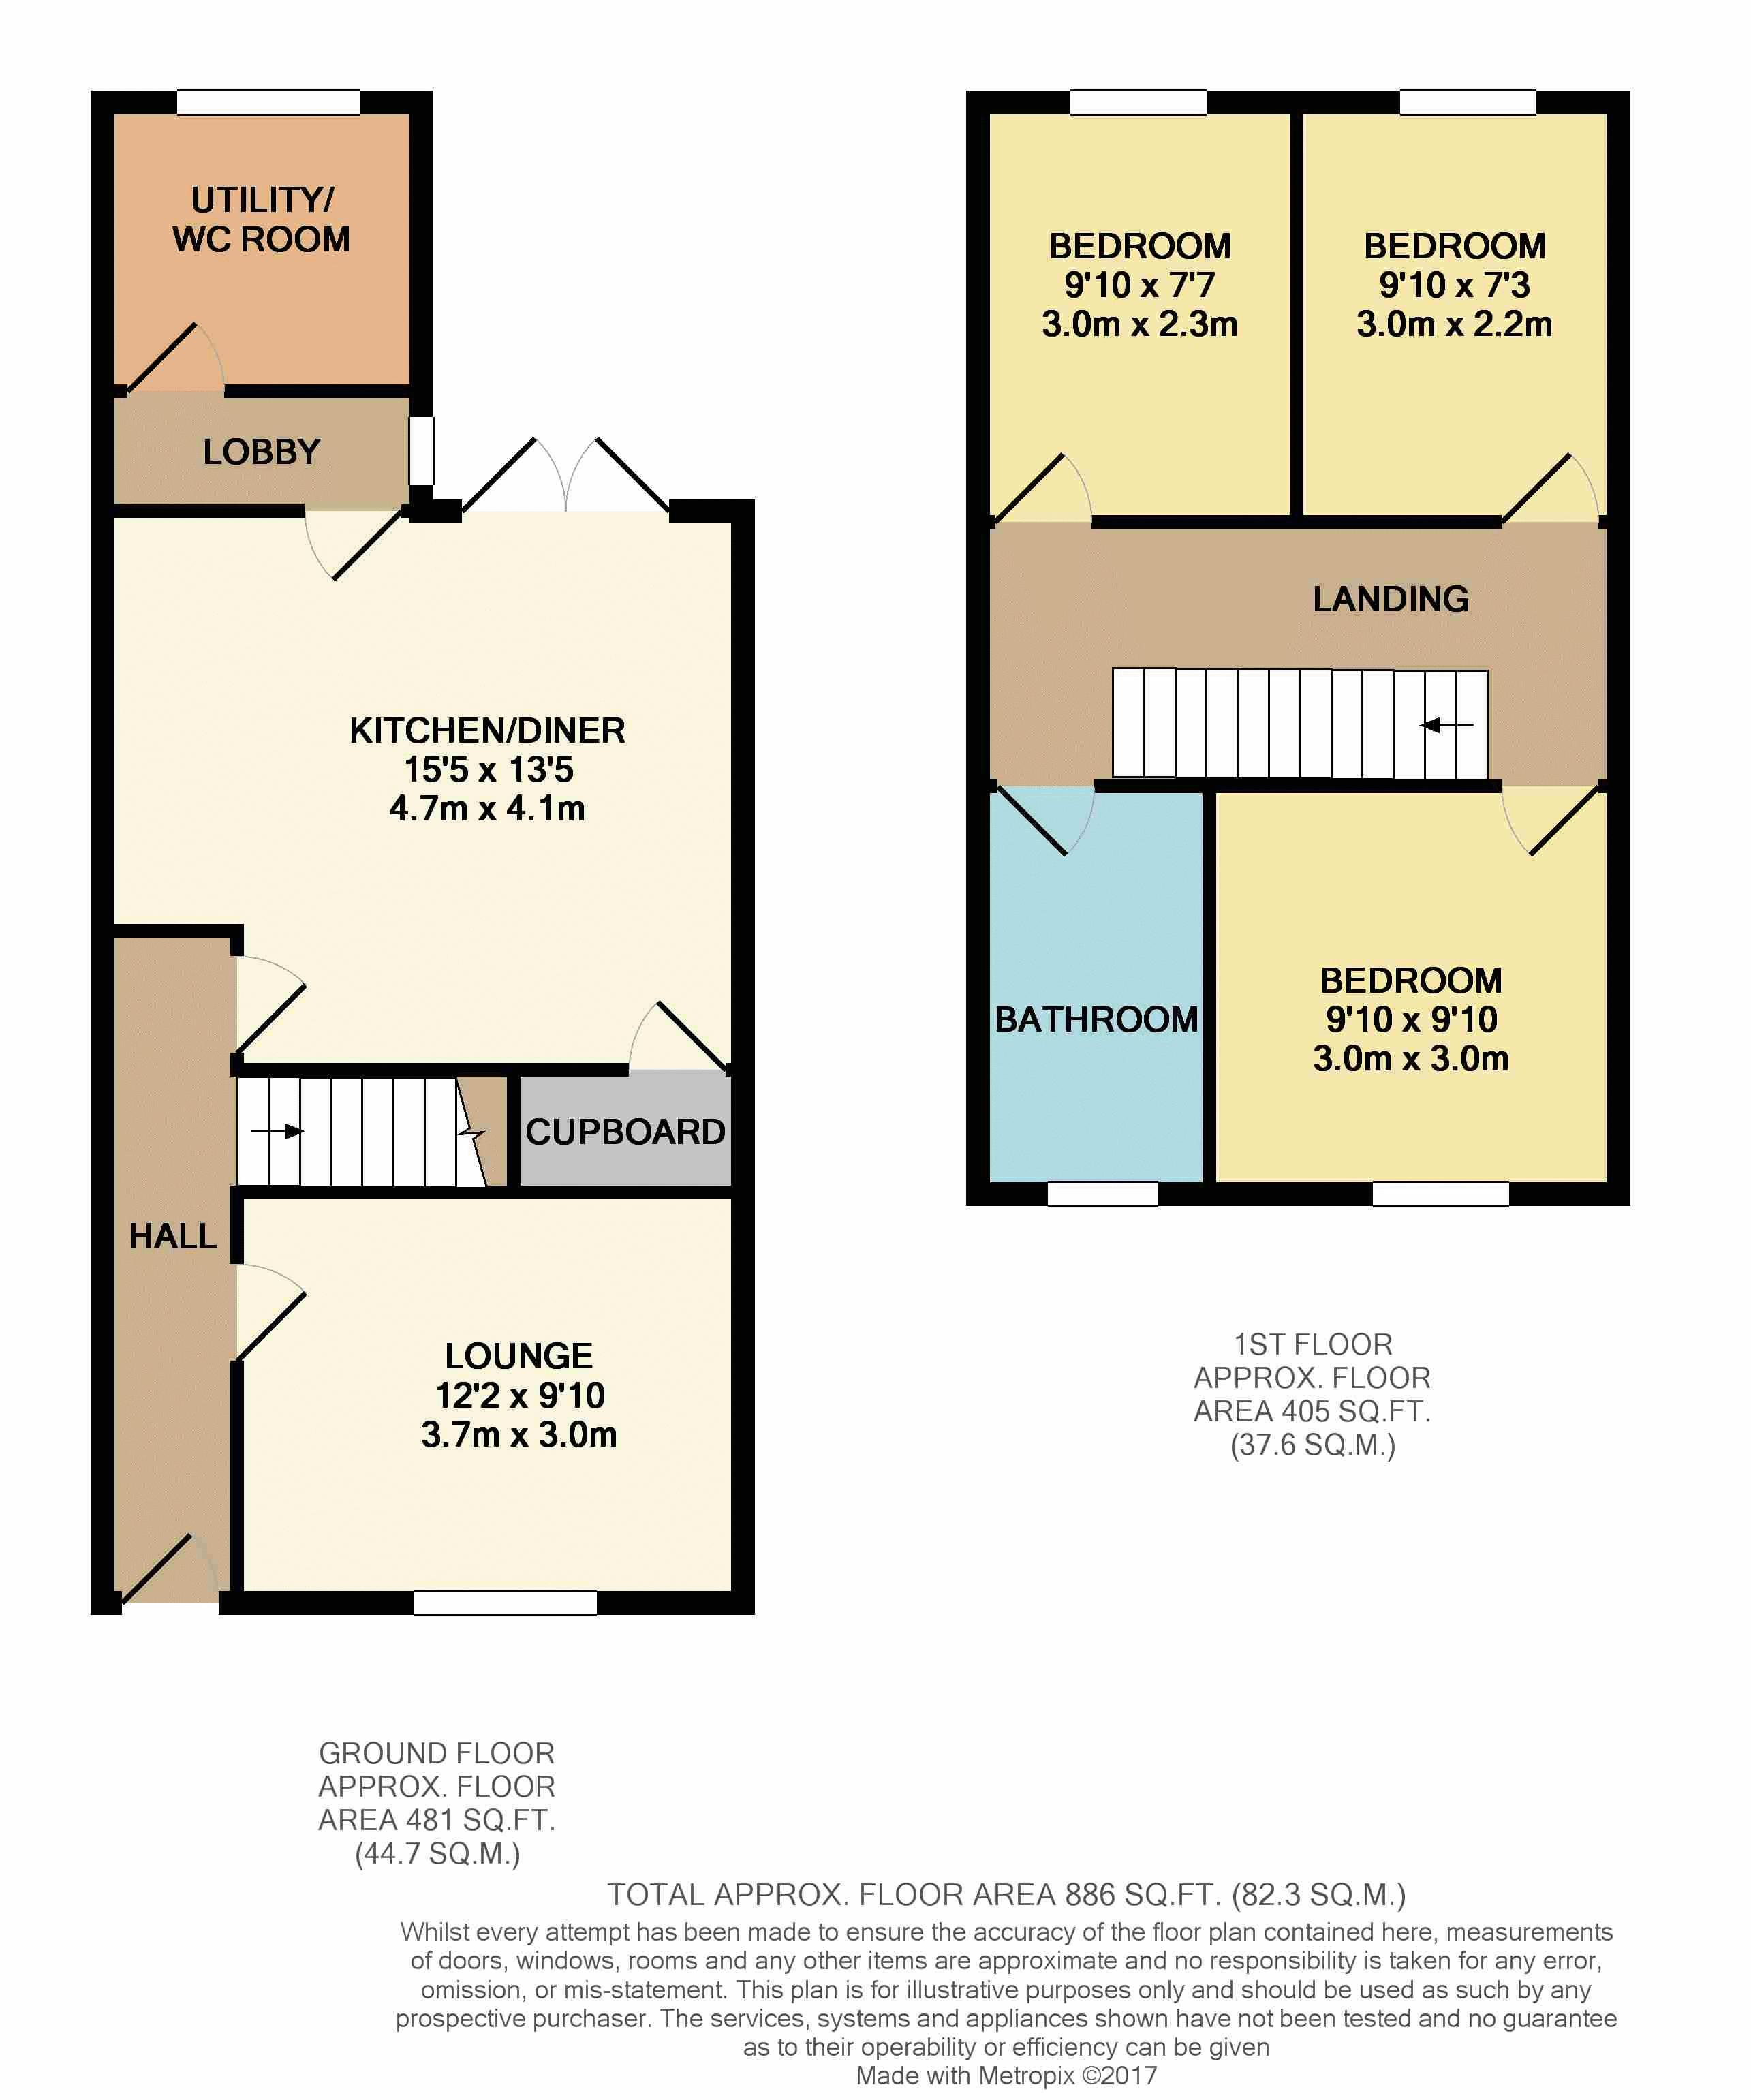 3 bedroom house for sale in cranfield for How much is a bedroom worth in an appraisal